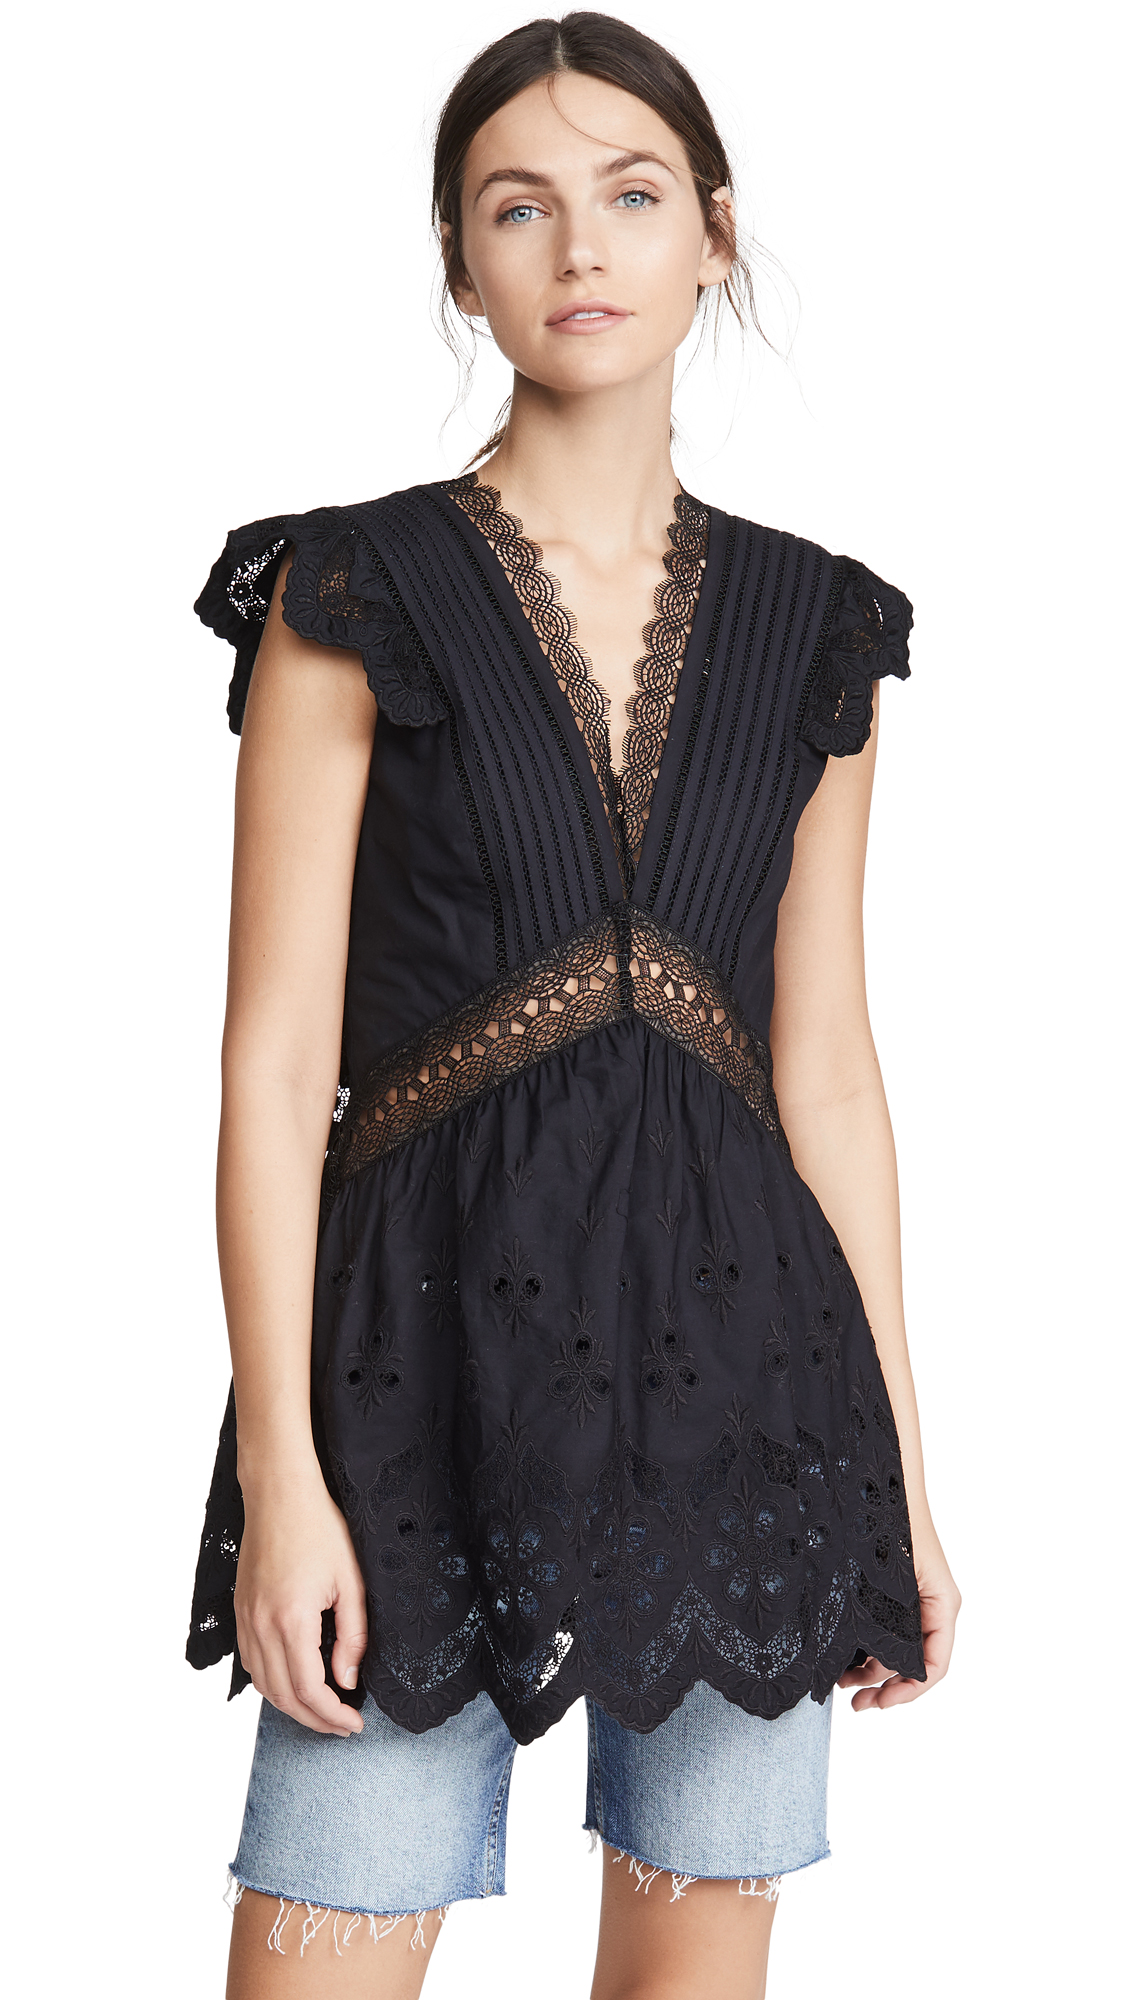 Self Portrait Broderie Sleeveless Top - 30% Off Sale